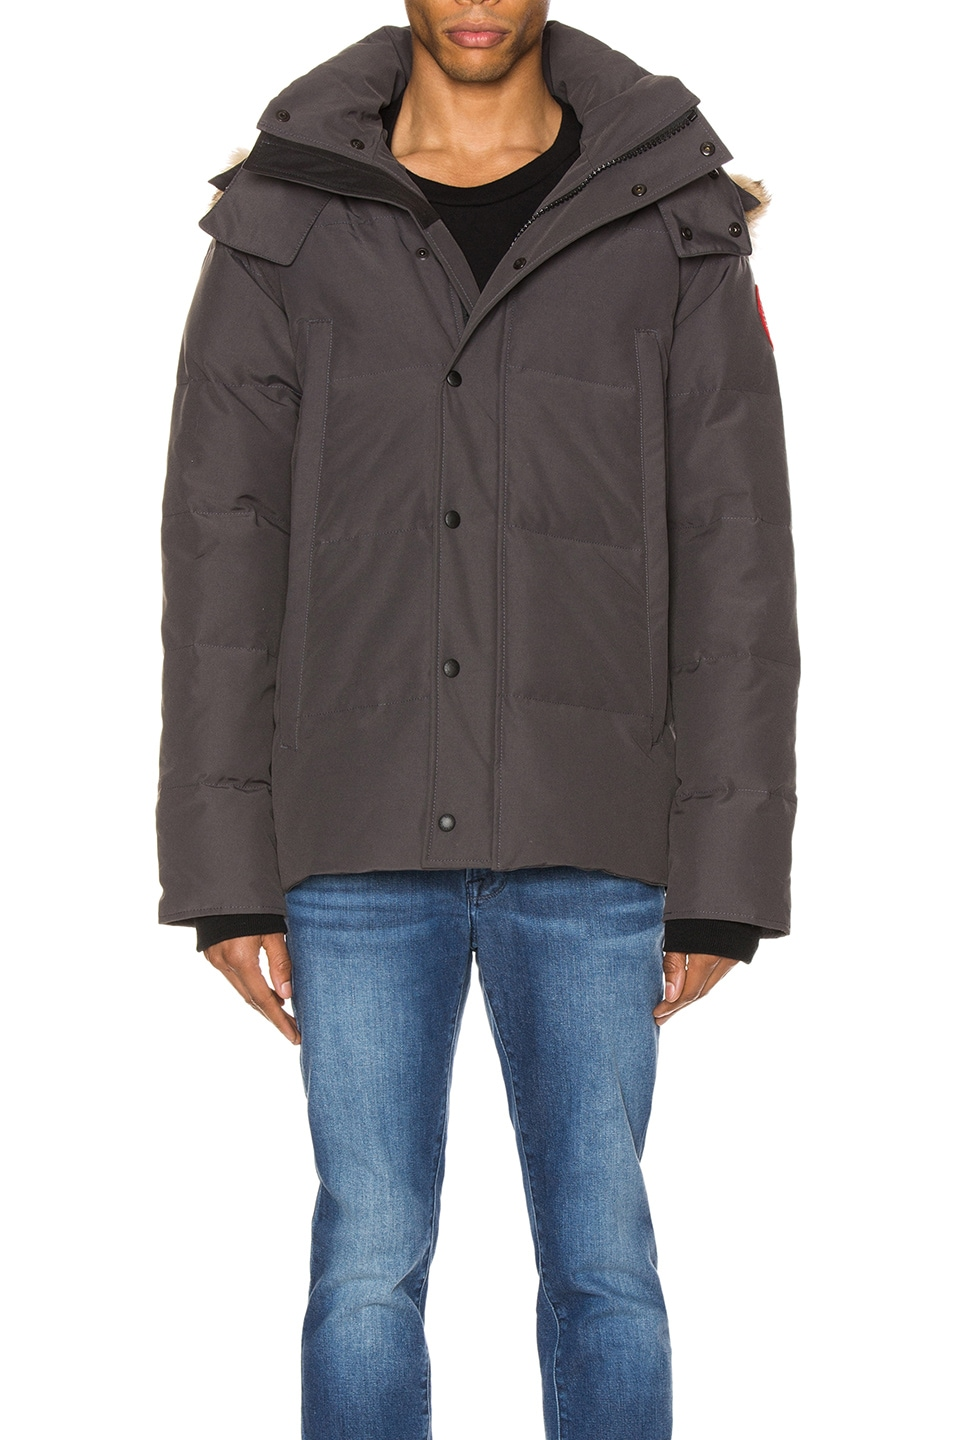 Image 2 of Canada Goose Wyndham Parka in Graphite